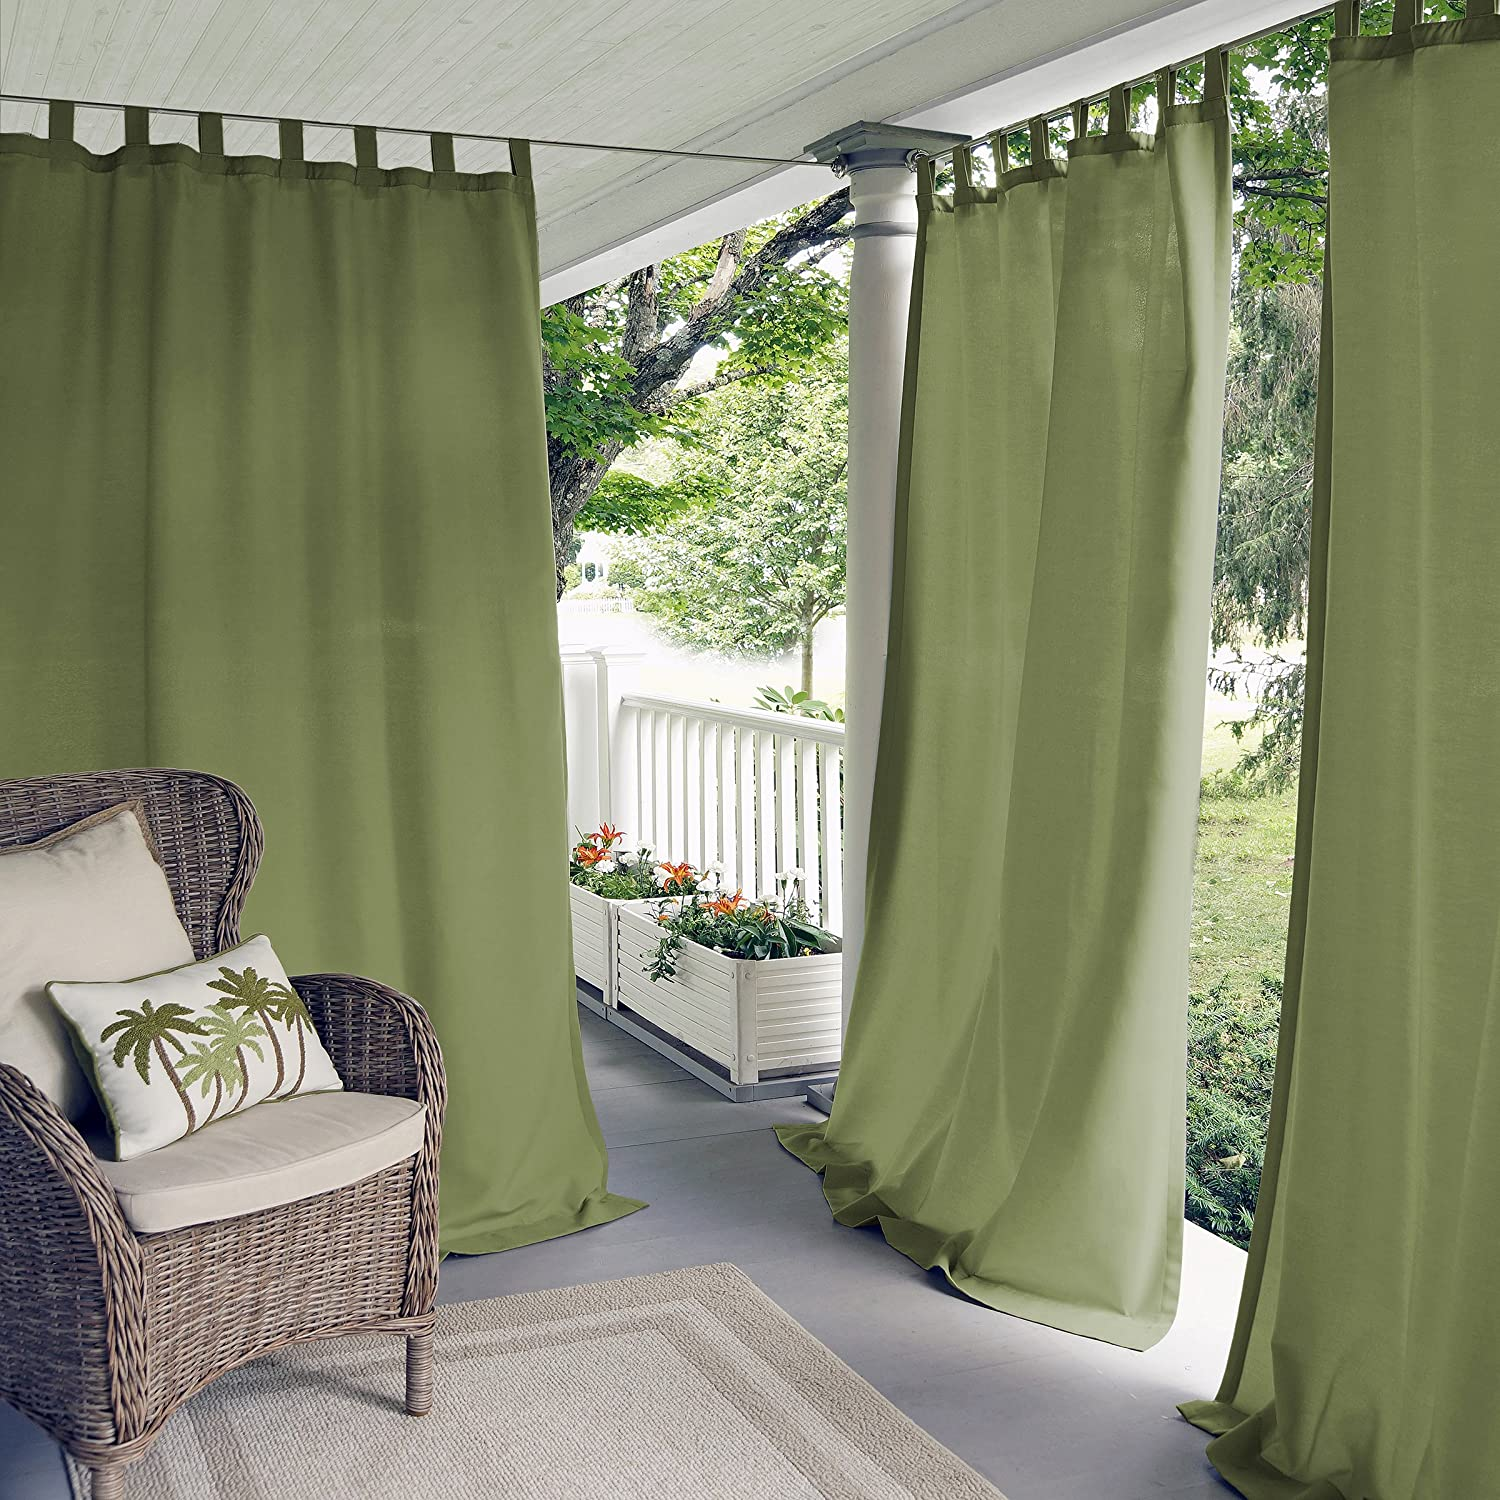 Elrene Home Fashions Indoor/Outdoor Solid UV Protectant Tab Top Single Window Curtain Panel Drape for Patio, Pergola, Porch, Deck, Lanai, and Cabana Matine Green 52